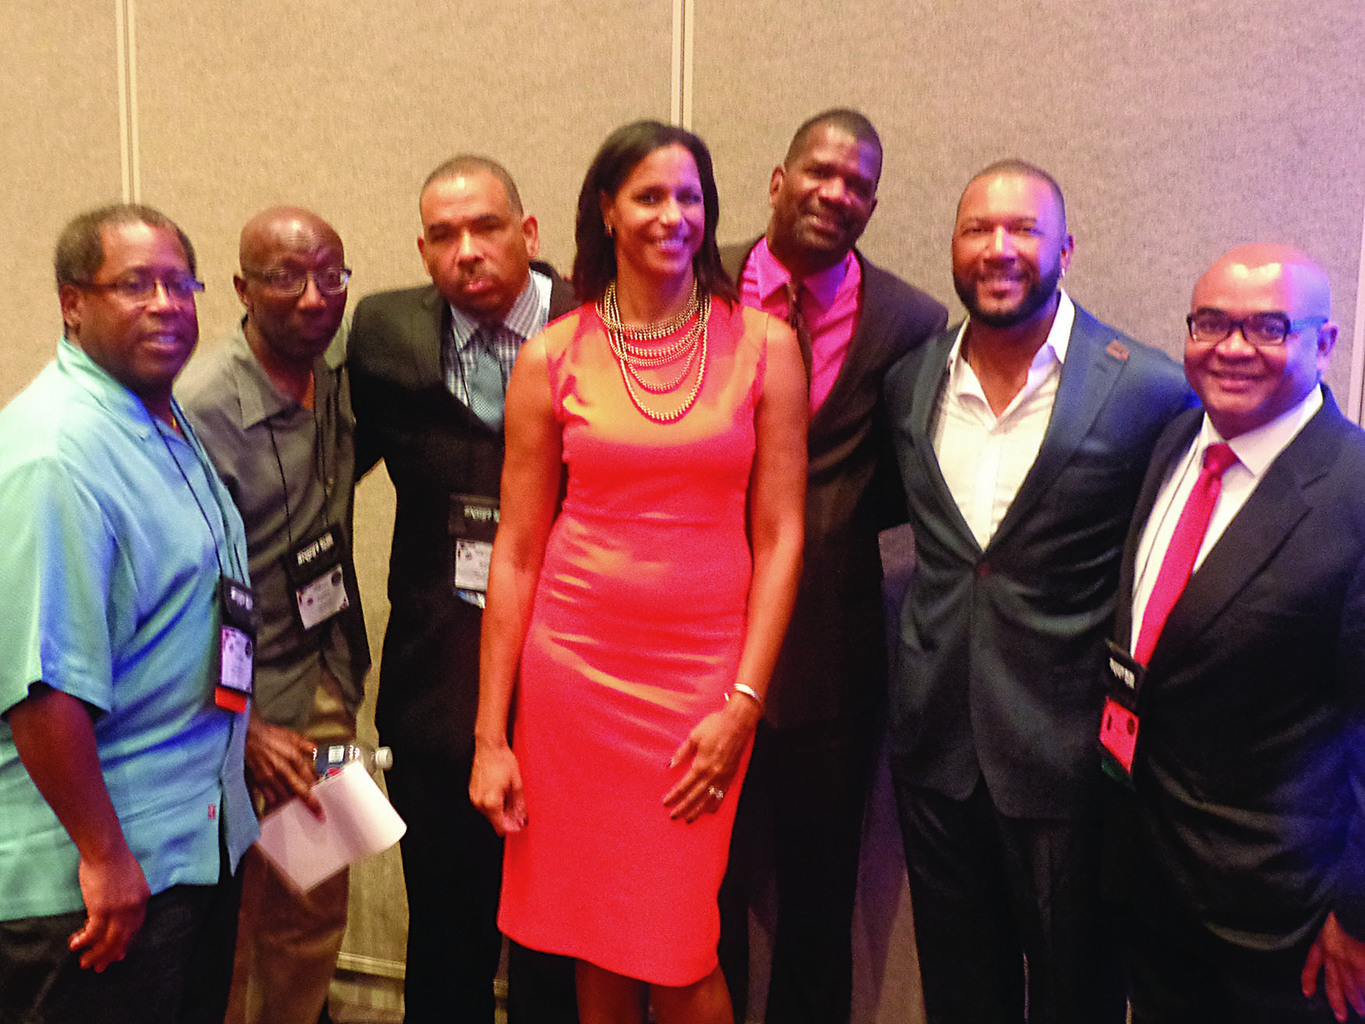 Baseball panel members (l-r) LaVelle Neal III, Justice Hill, Gary Washburn, Lea B. Olsen, Rob Parker, Gary Sheffield, Thomas Harding